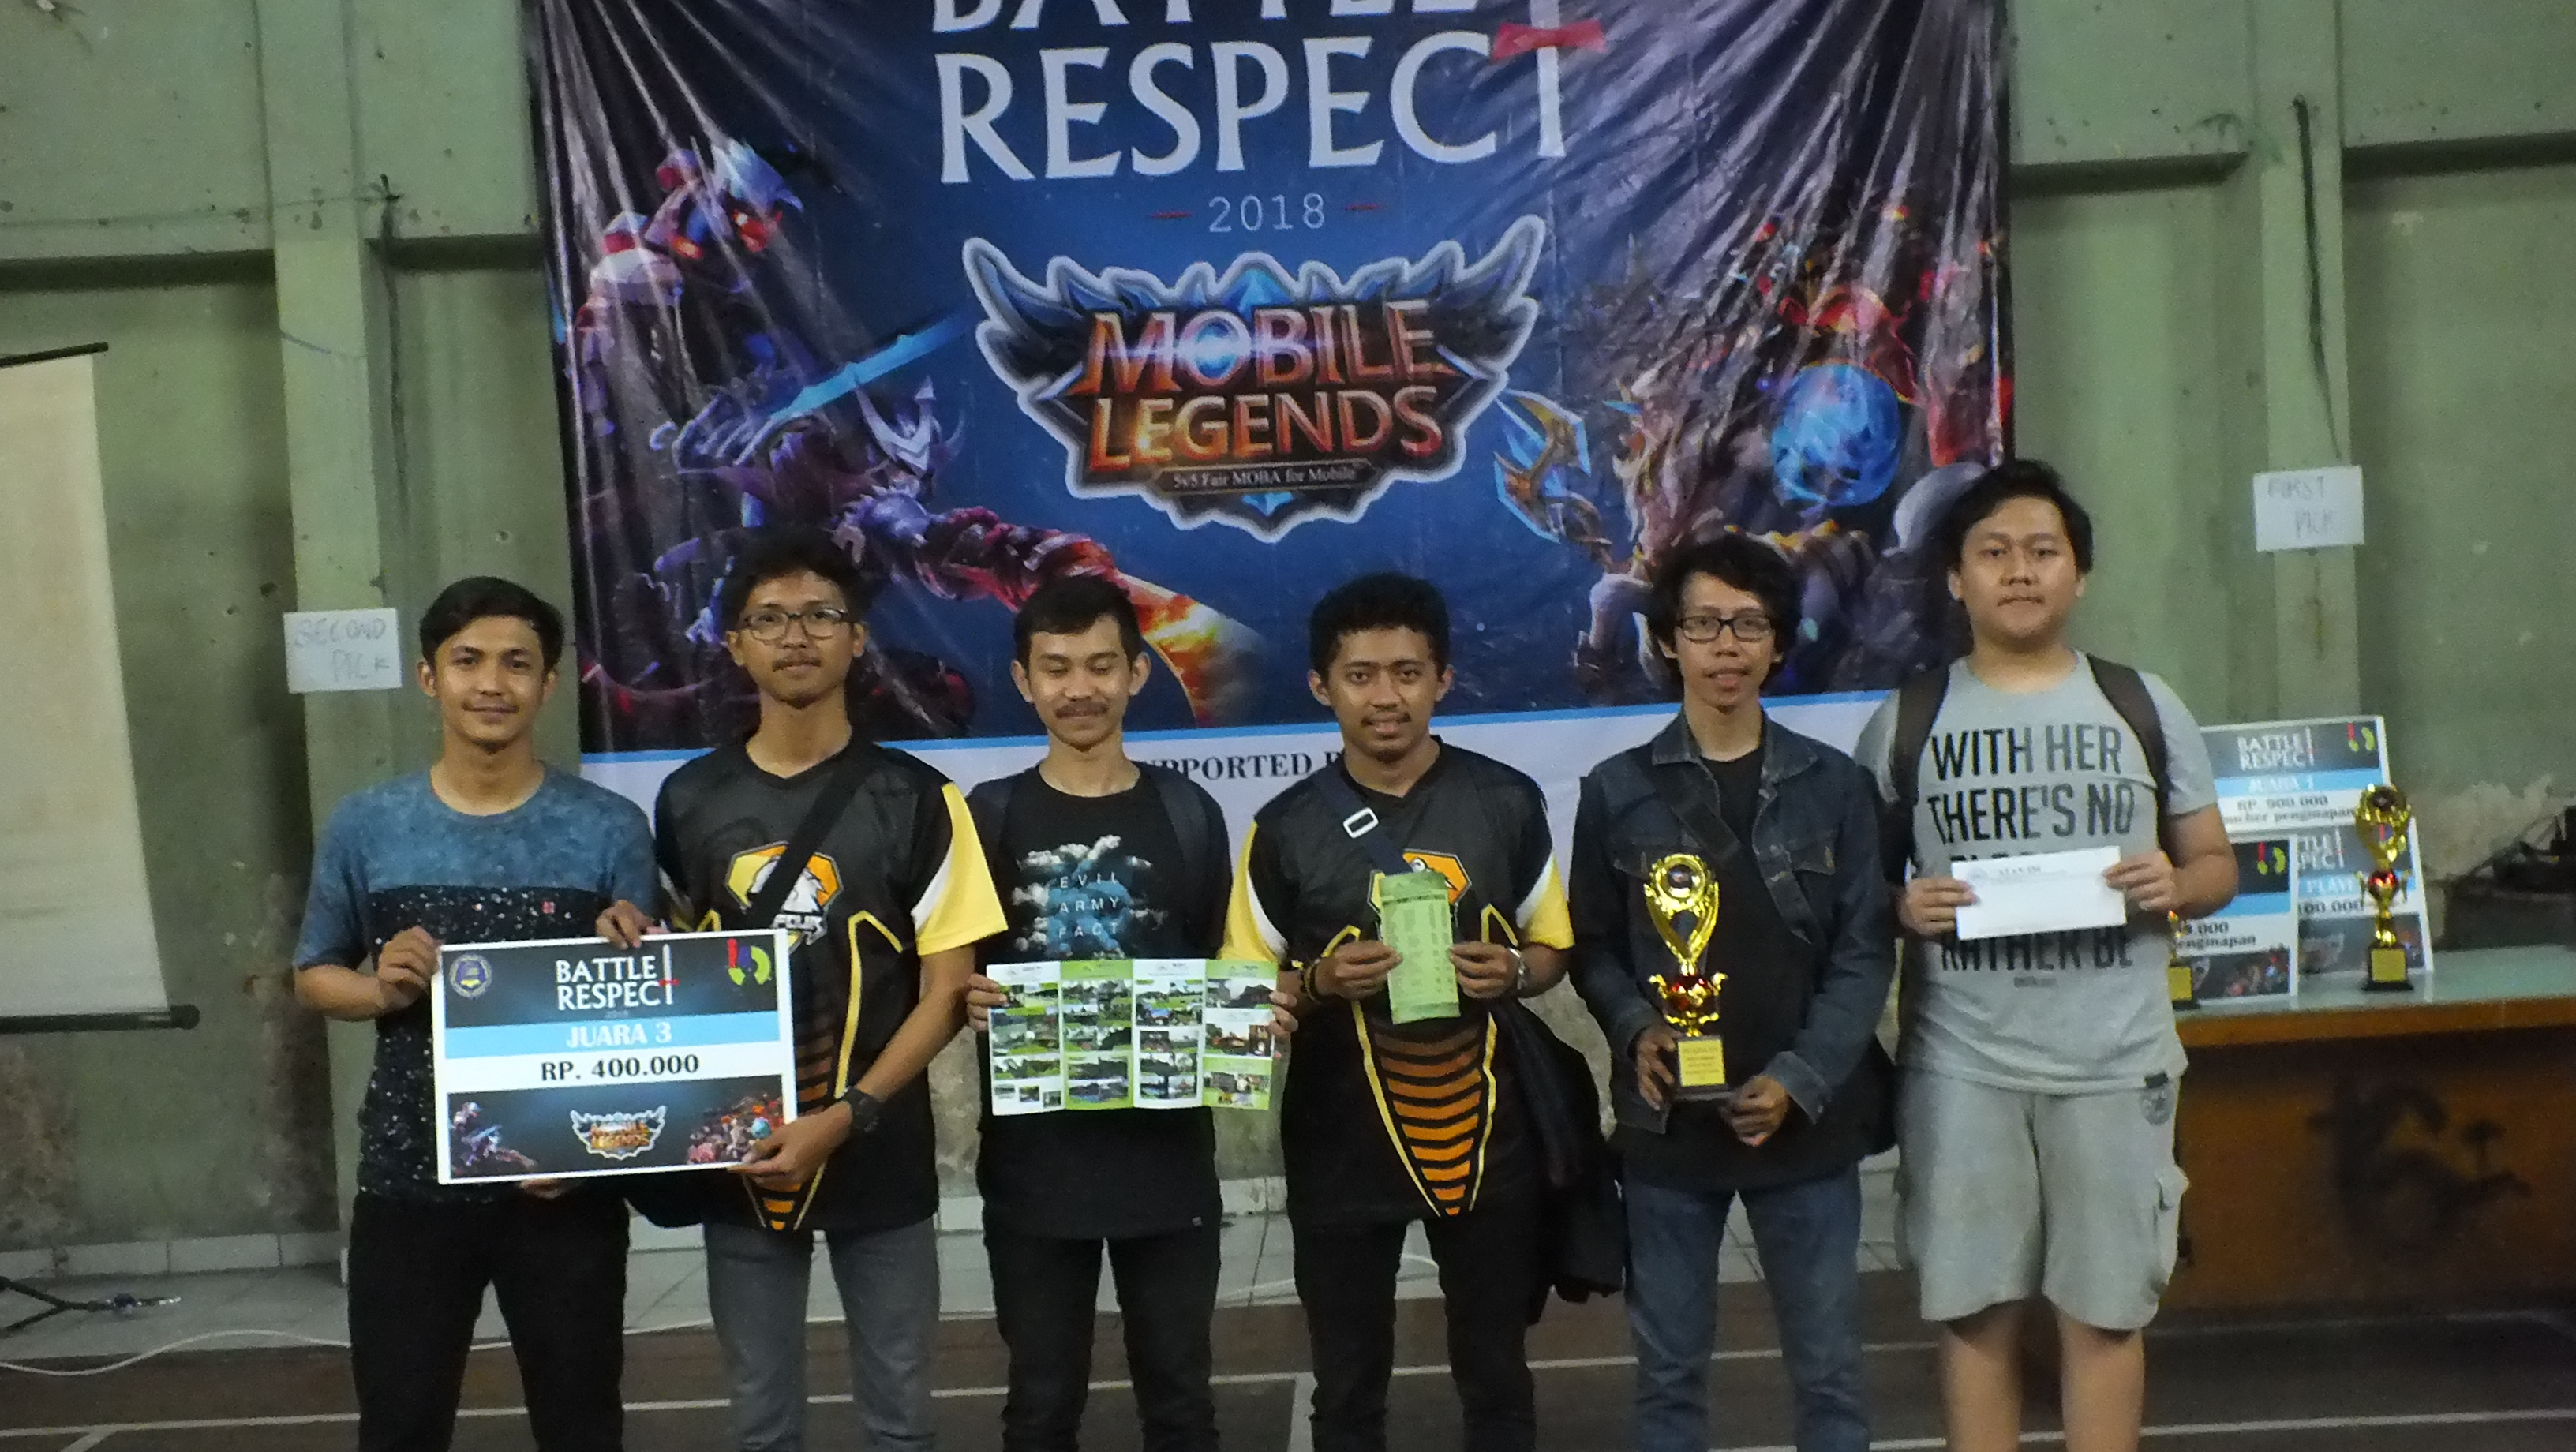 Tournament Mobile Legends Battle Respect 2018